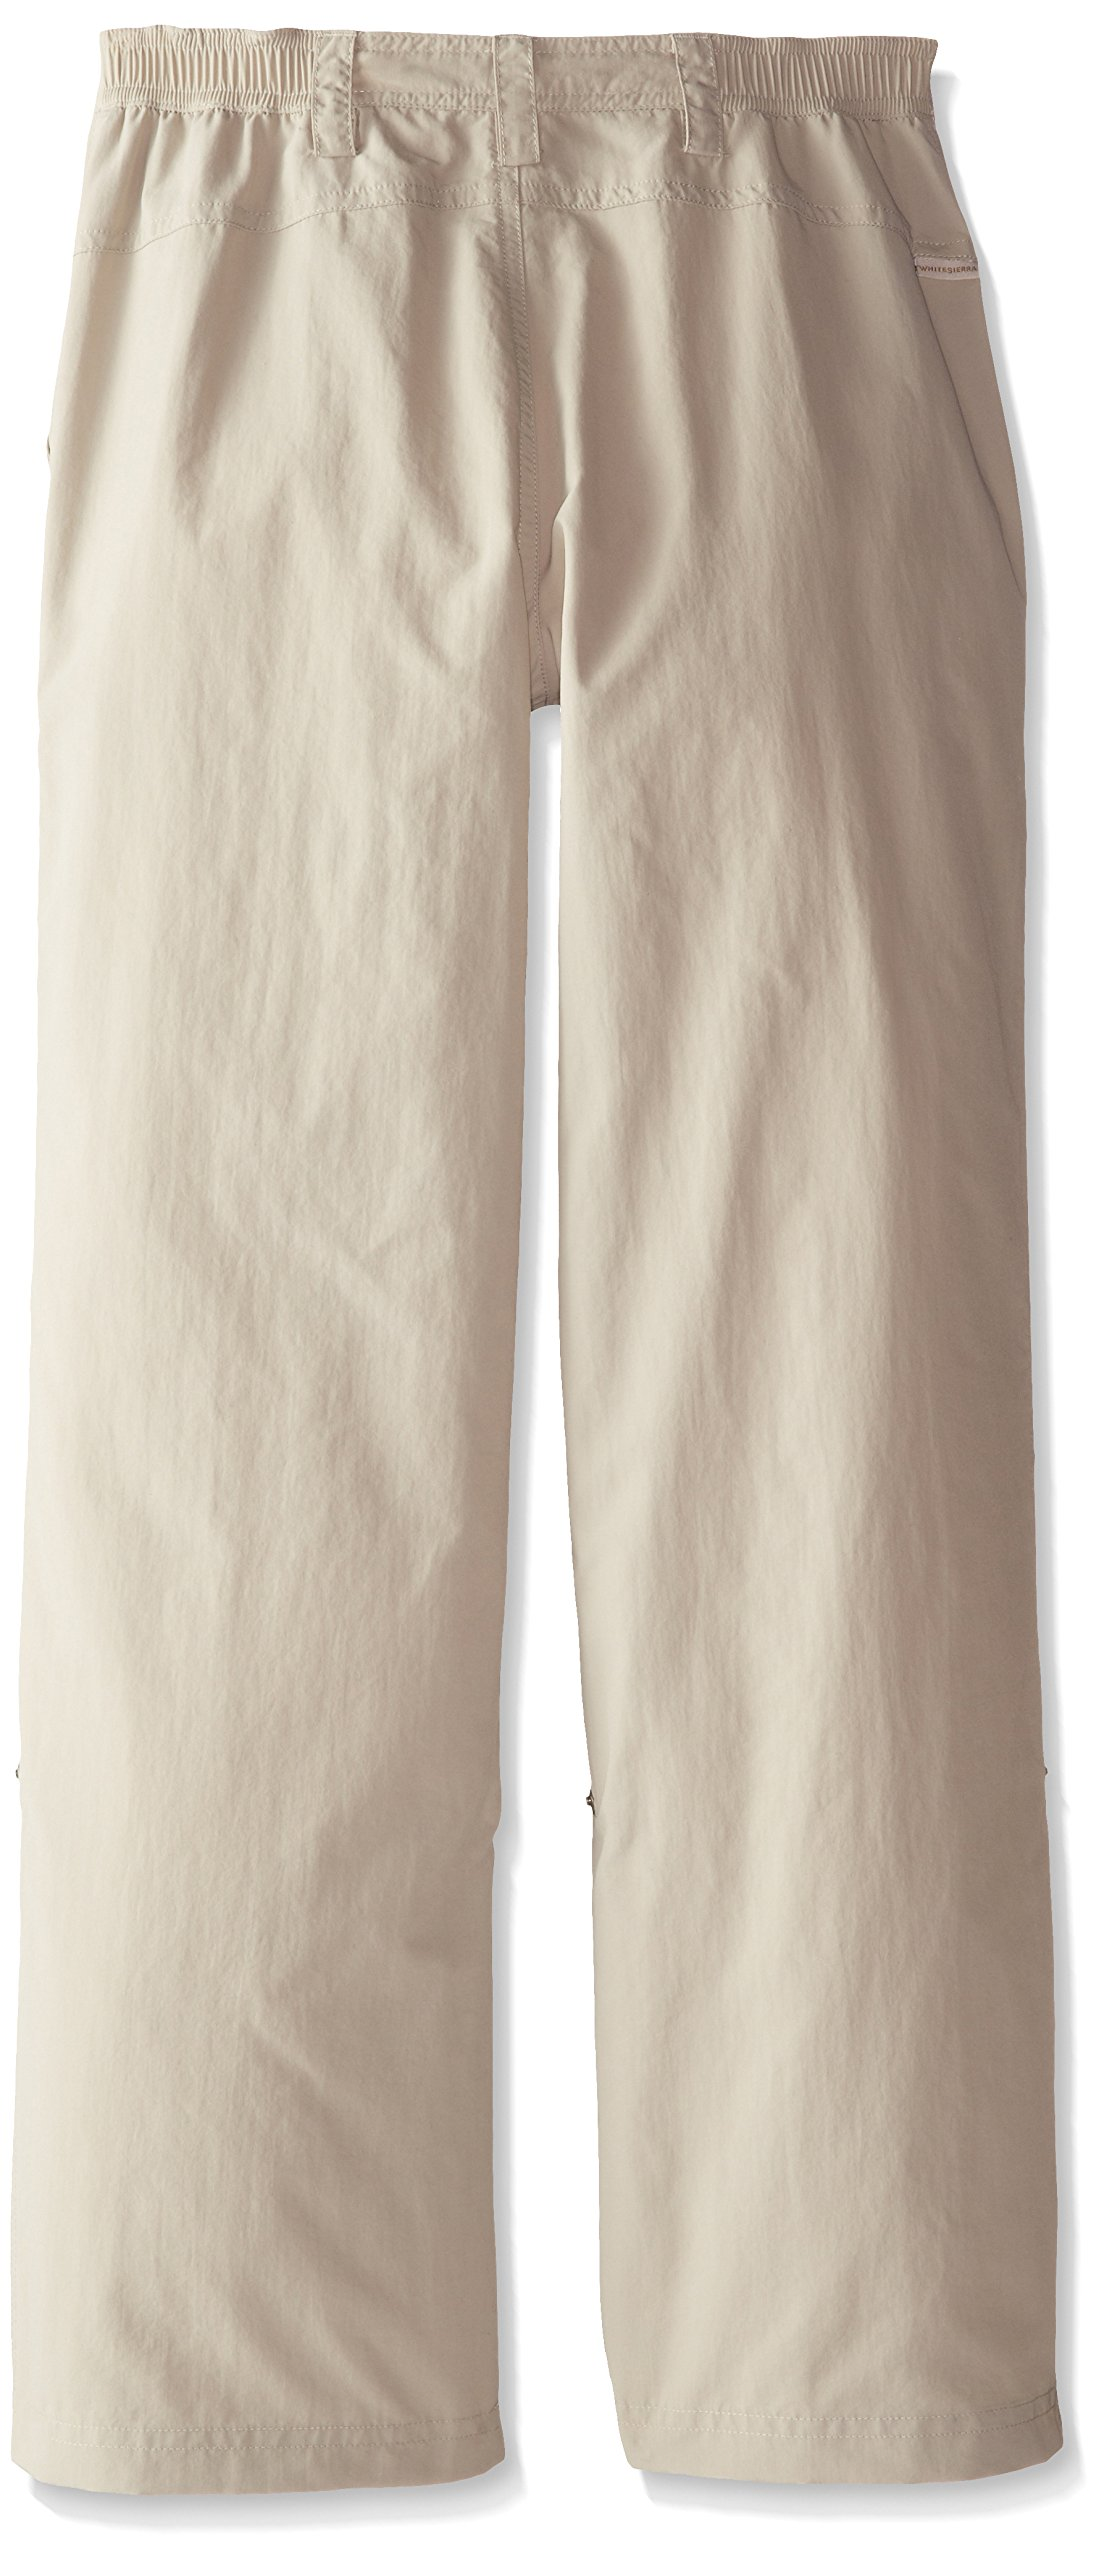 White Sierra Girls Trail Roll-Up Pant, Stone, Small by White Sierra (Image #2)